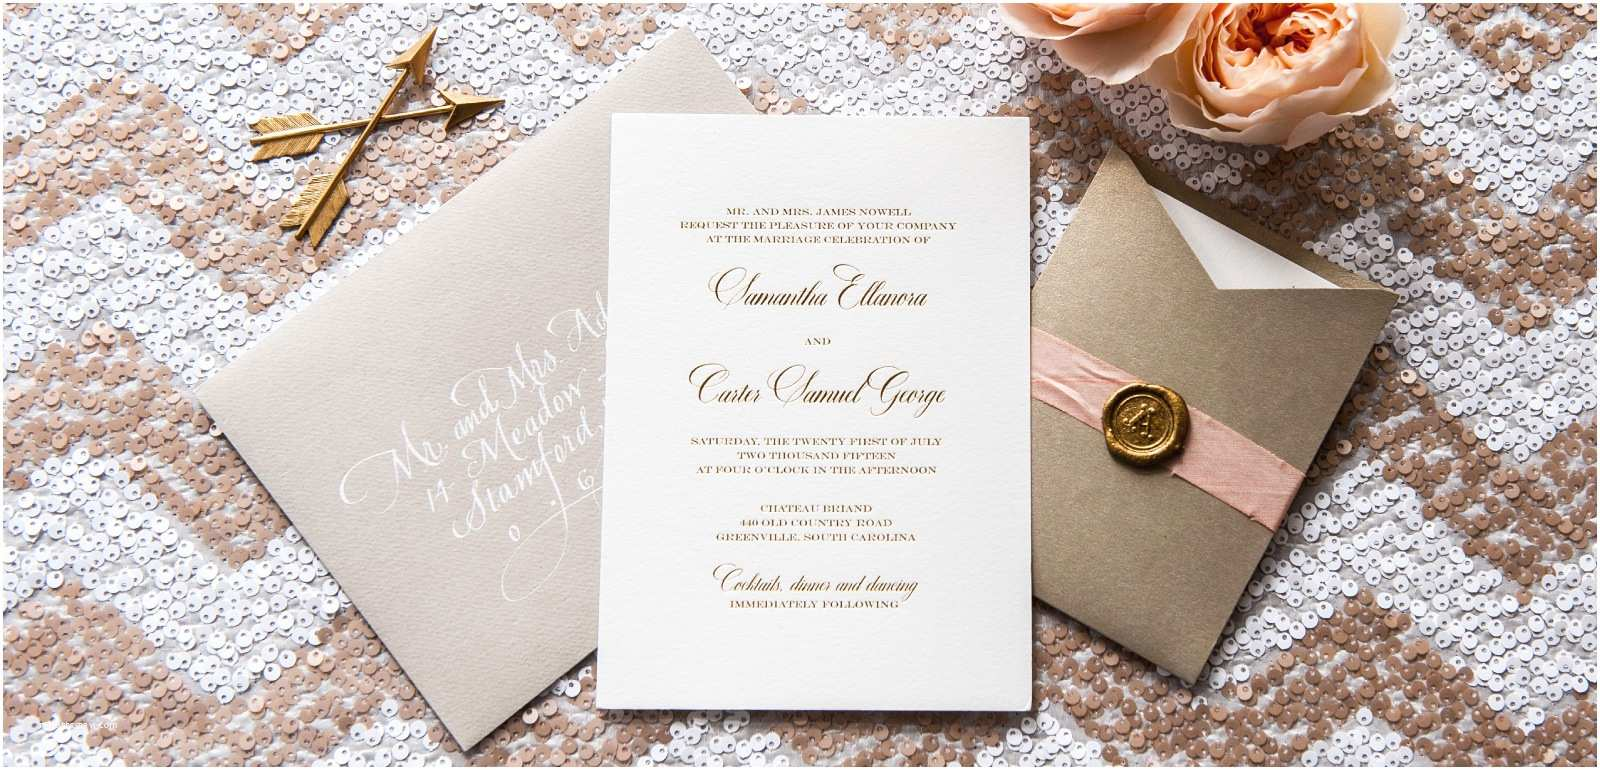 How to Make Your Own Wedding Invitations Make Your Own Wedding Invitations Uk